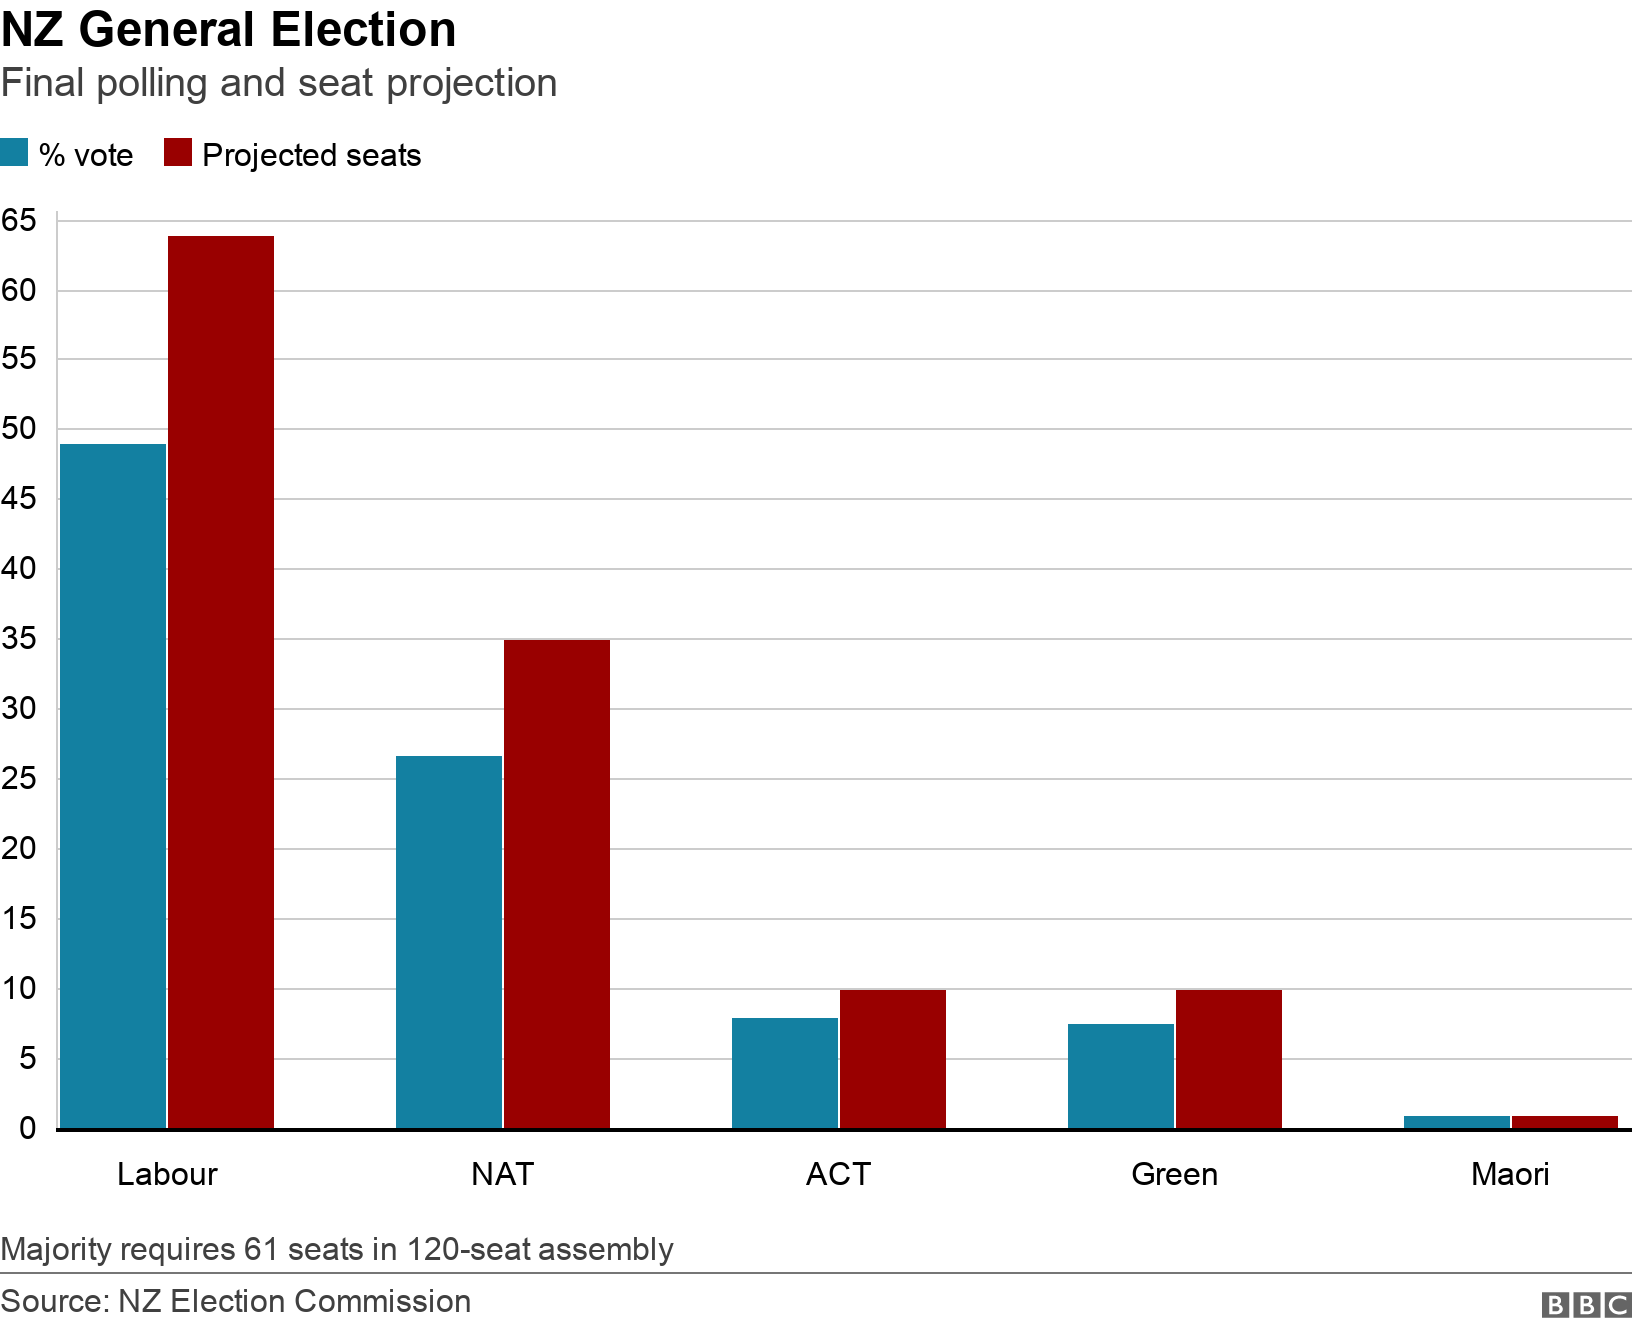 NZ General Election. Final polling and seat projection.  Majority requires 61 seats in 120-seat assembly.